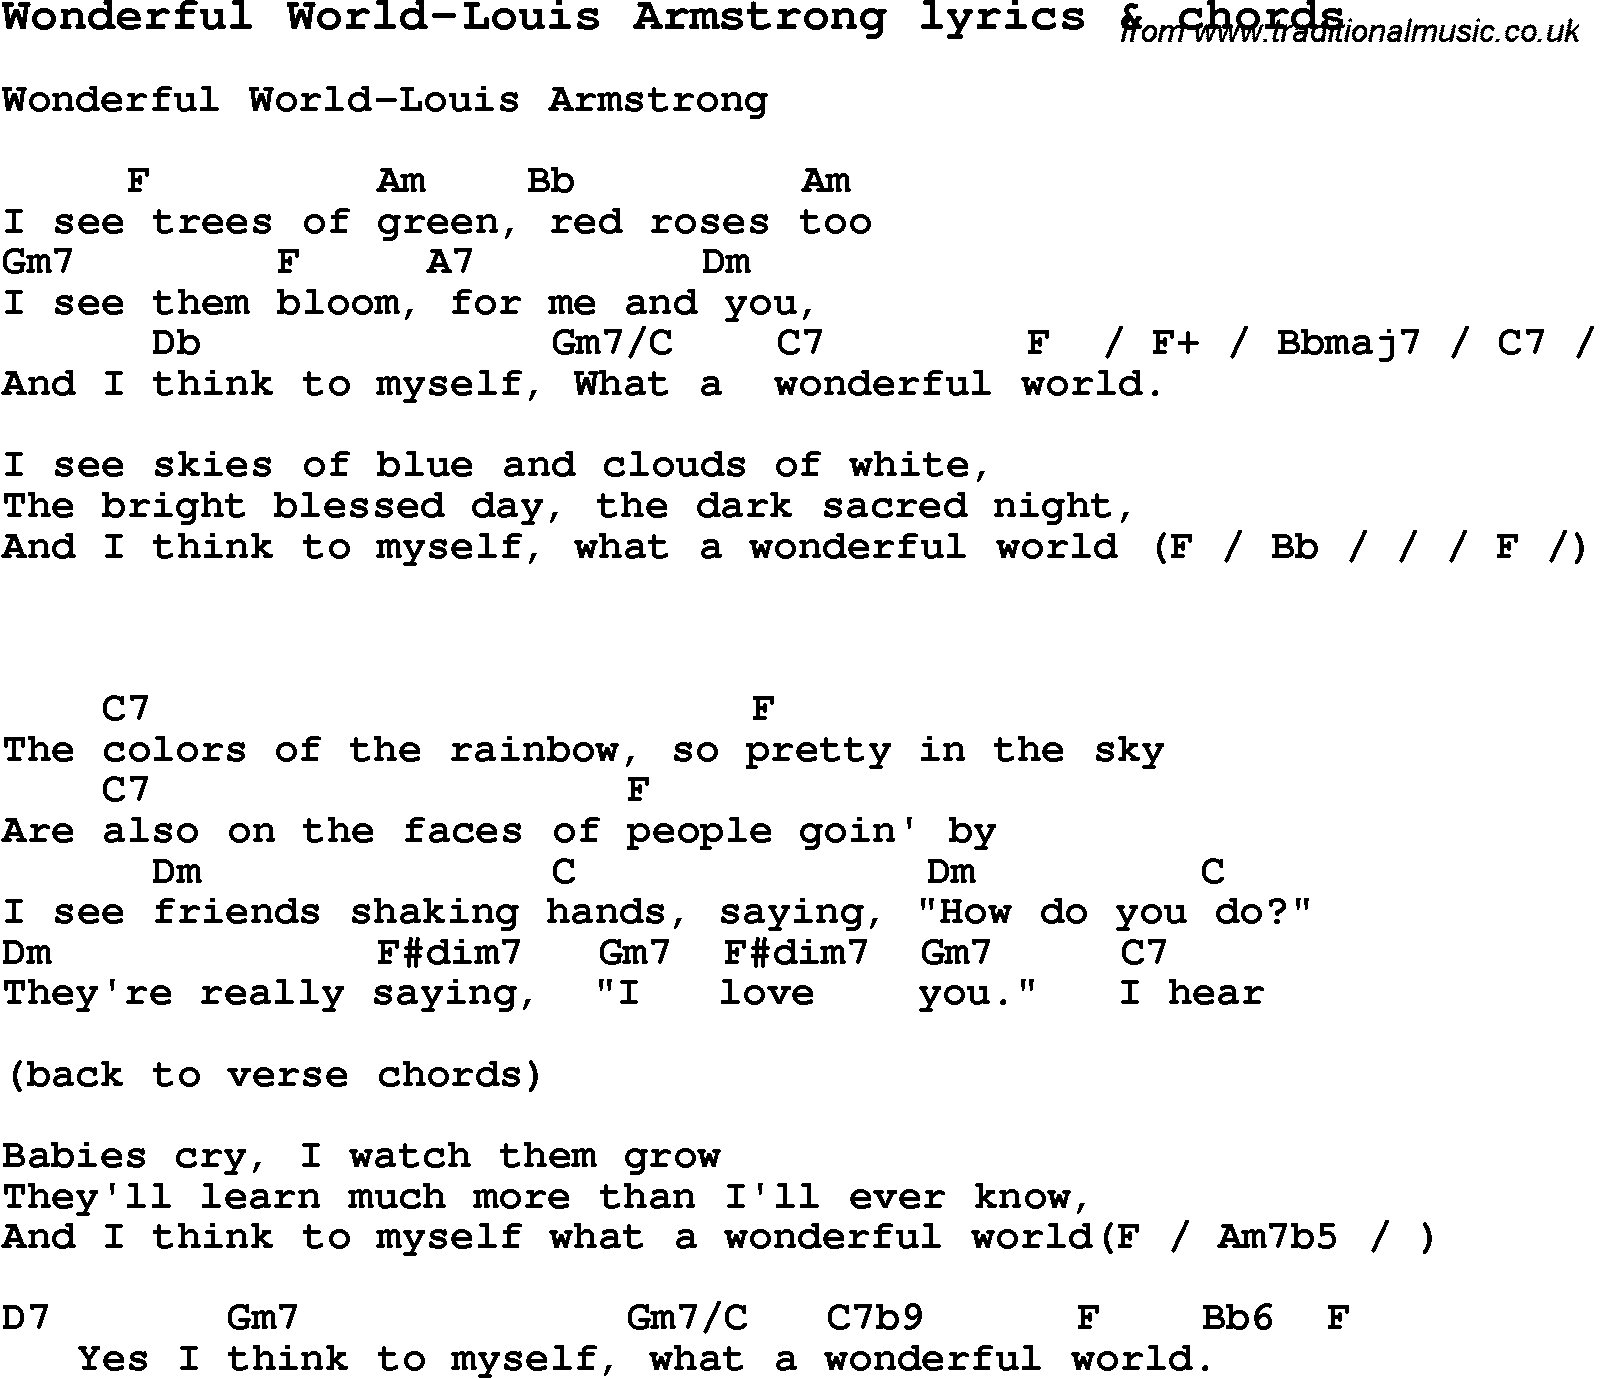 What A Wonderful World Chords Love Song Lyrics Forwonderful World Louis Armstrong With Chords